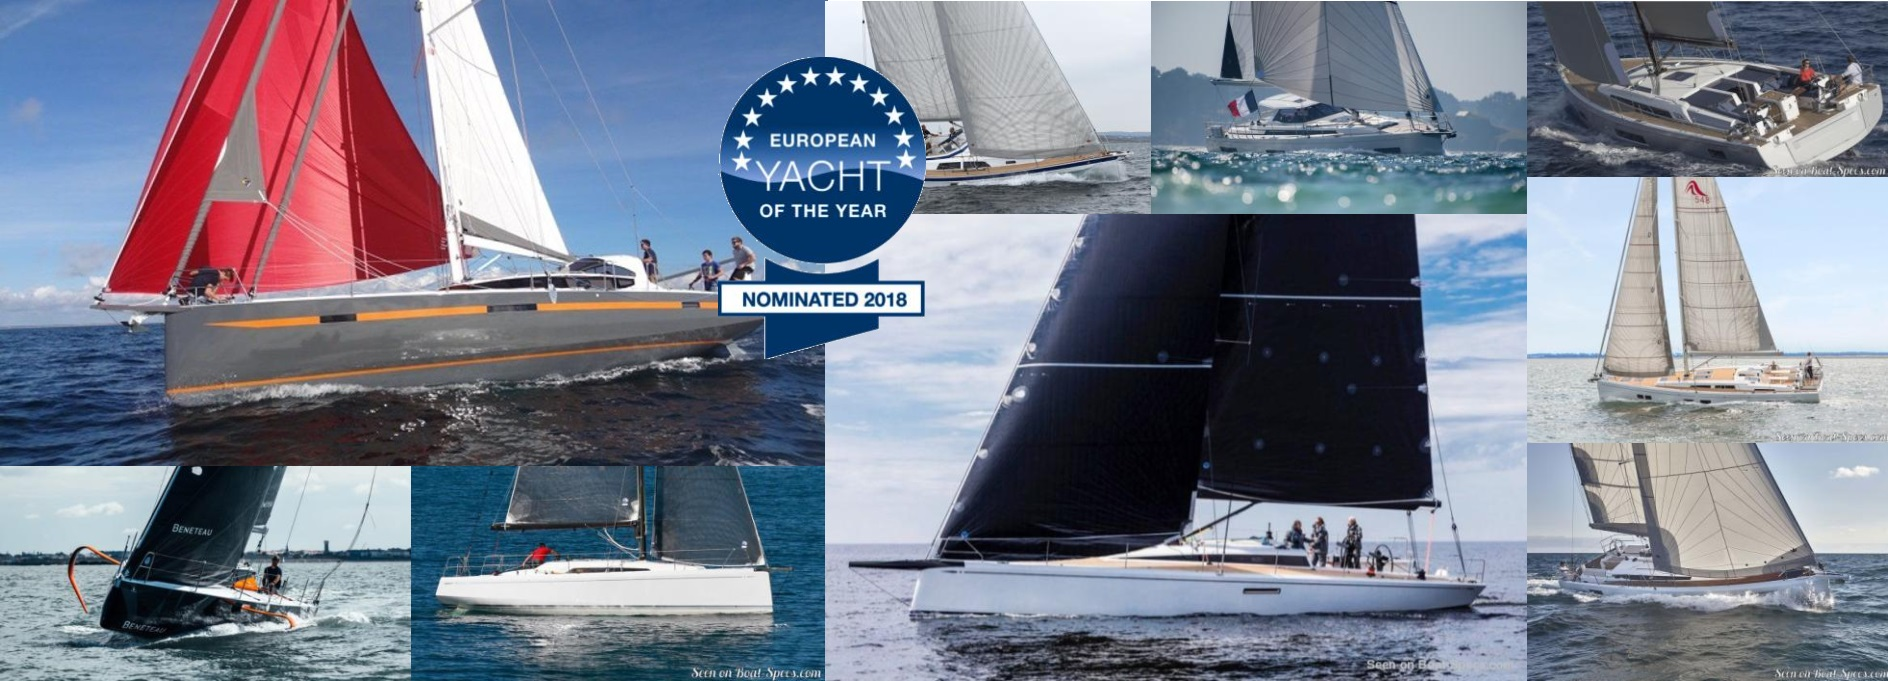 European Yacht of the Year 2018 nominated sailboats © Boat-Specs.com